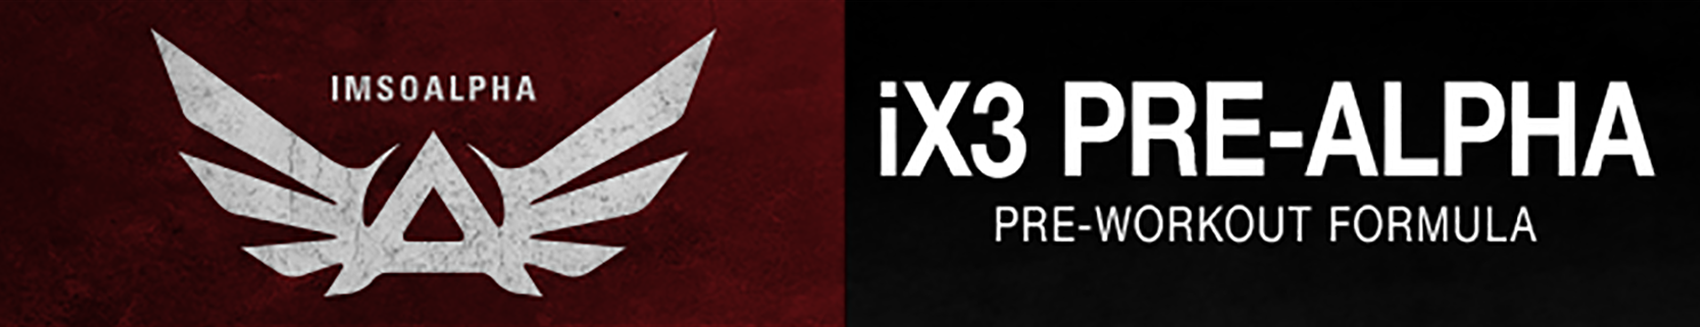 iX3 Pre-Alpha Pre-Workout by IMSOALPHA